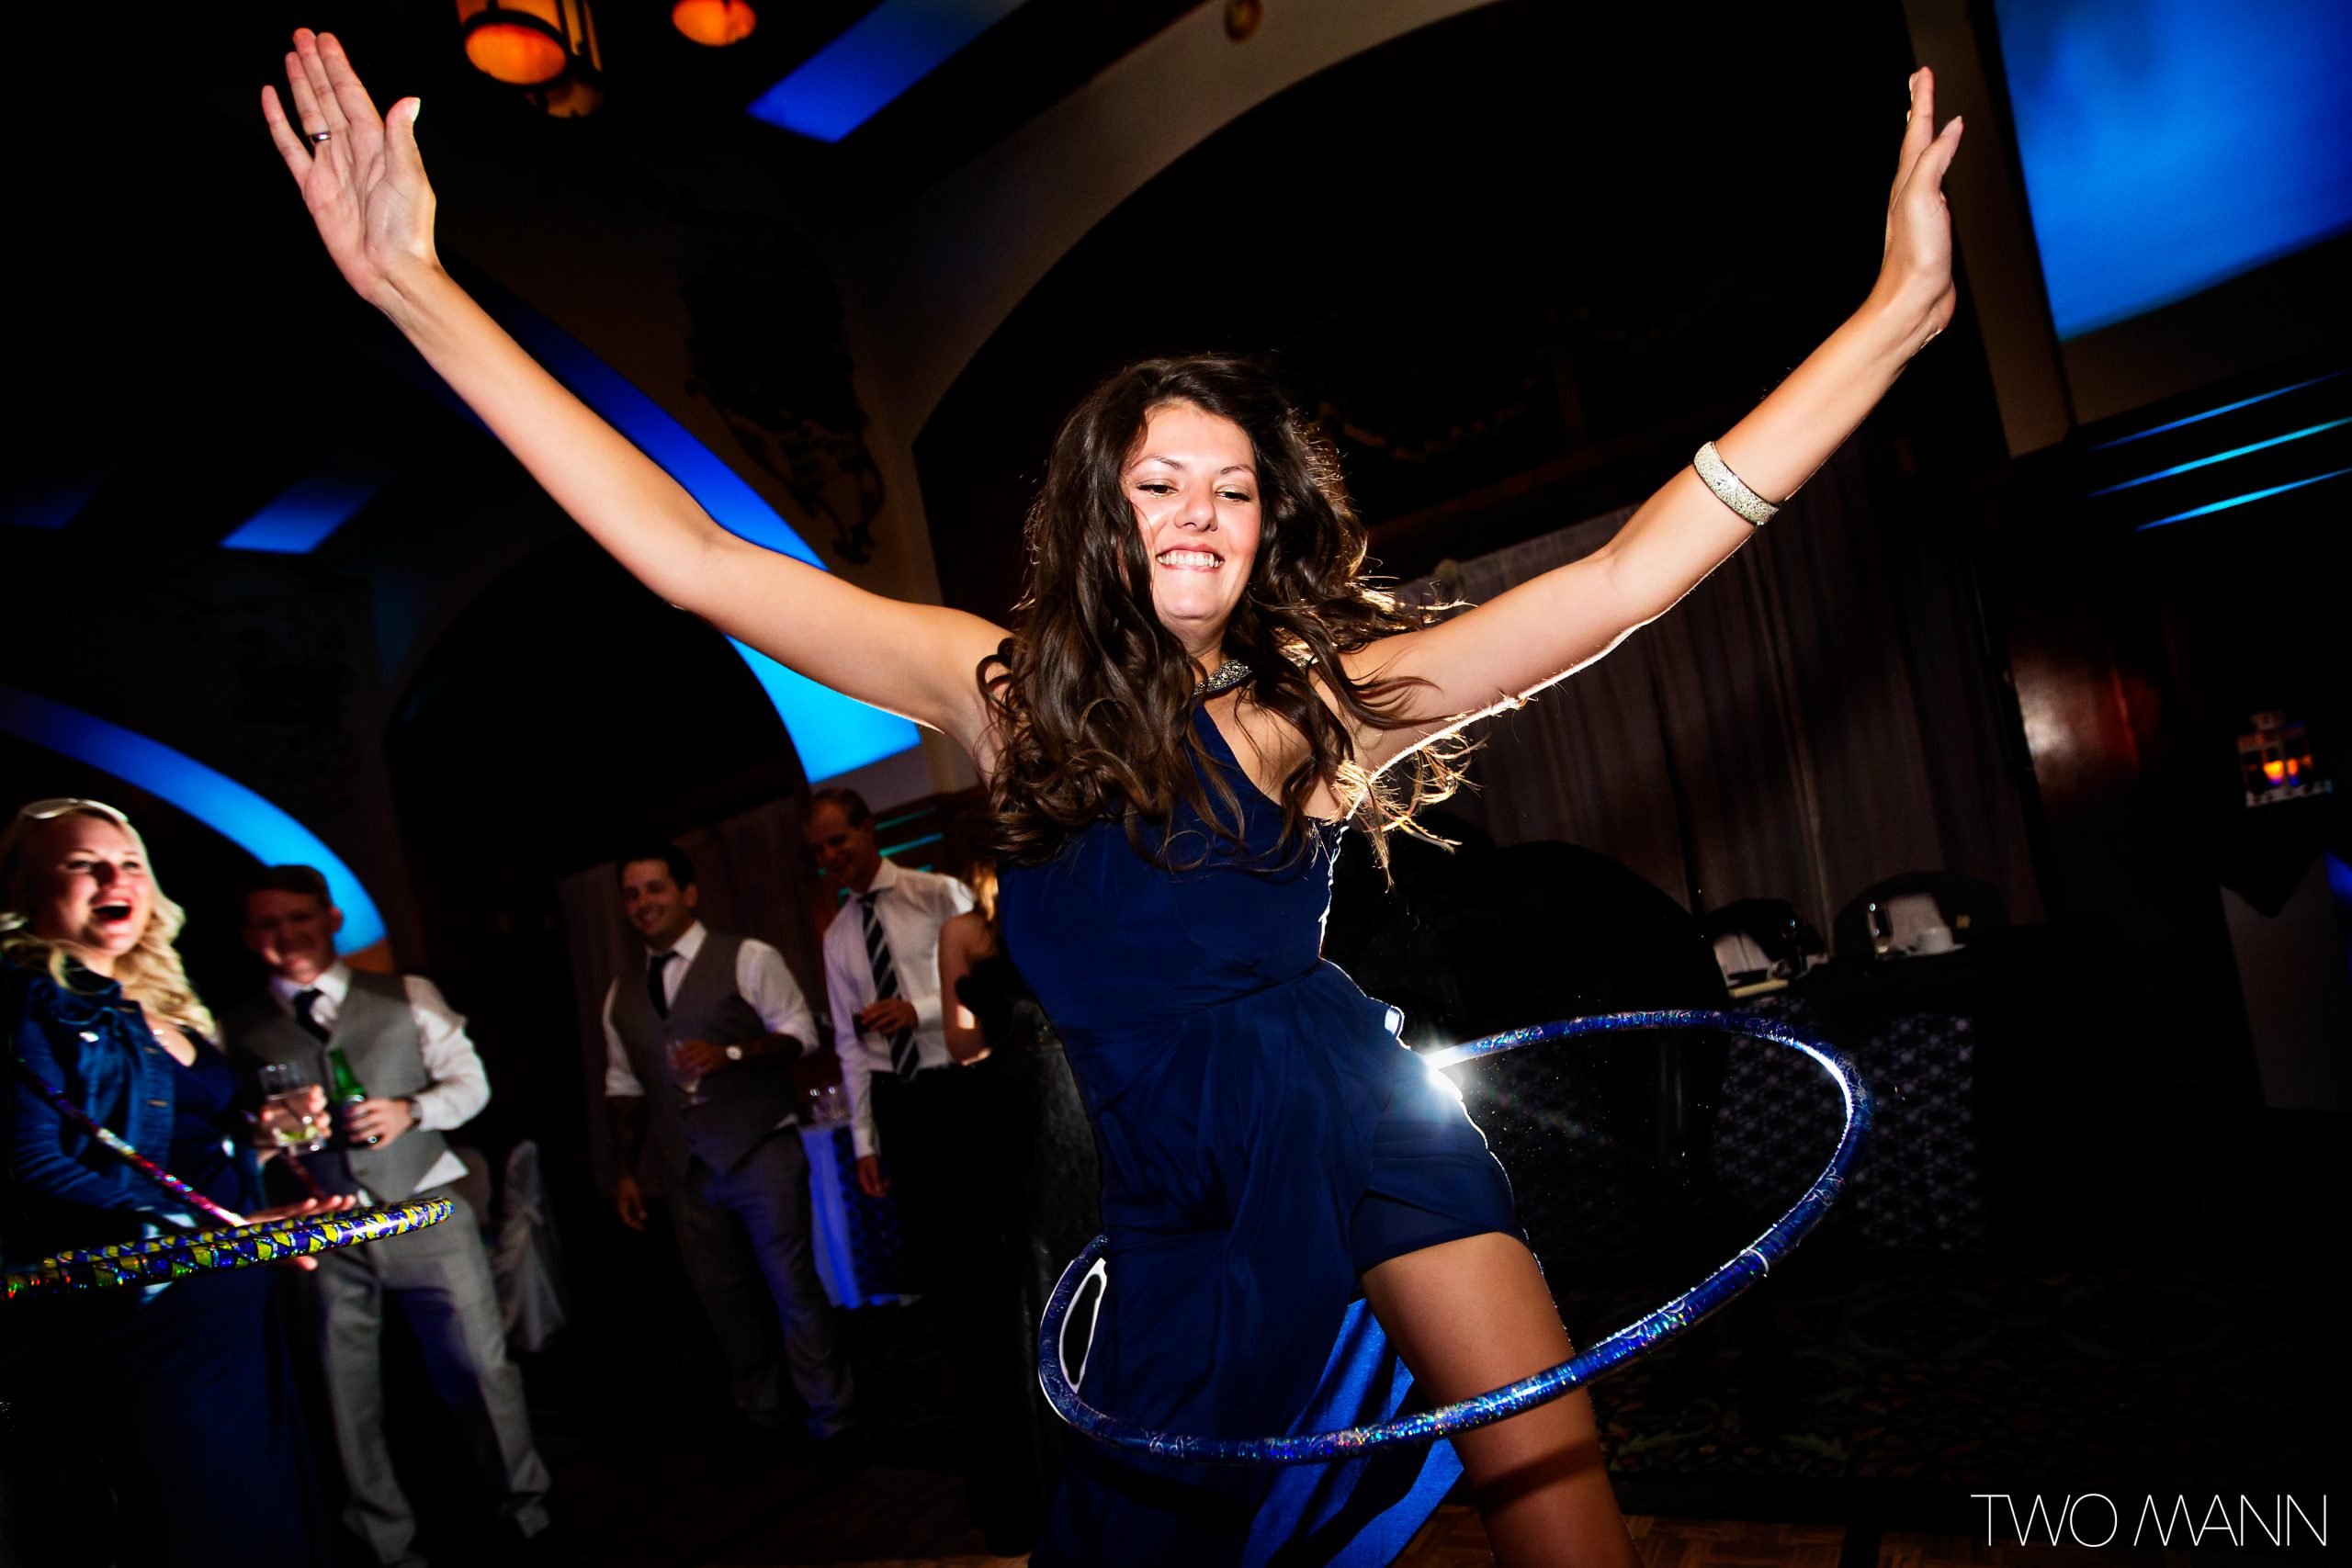 a lady dancing with a hula hoop at a wedding reception